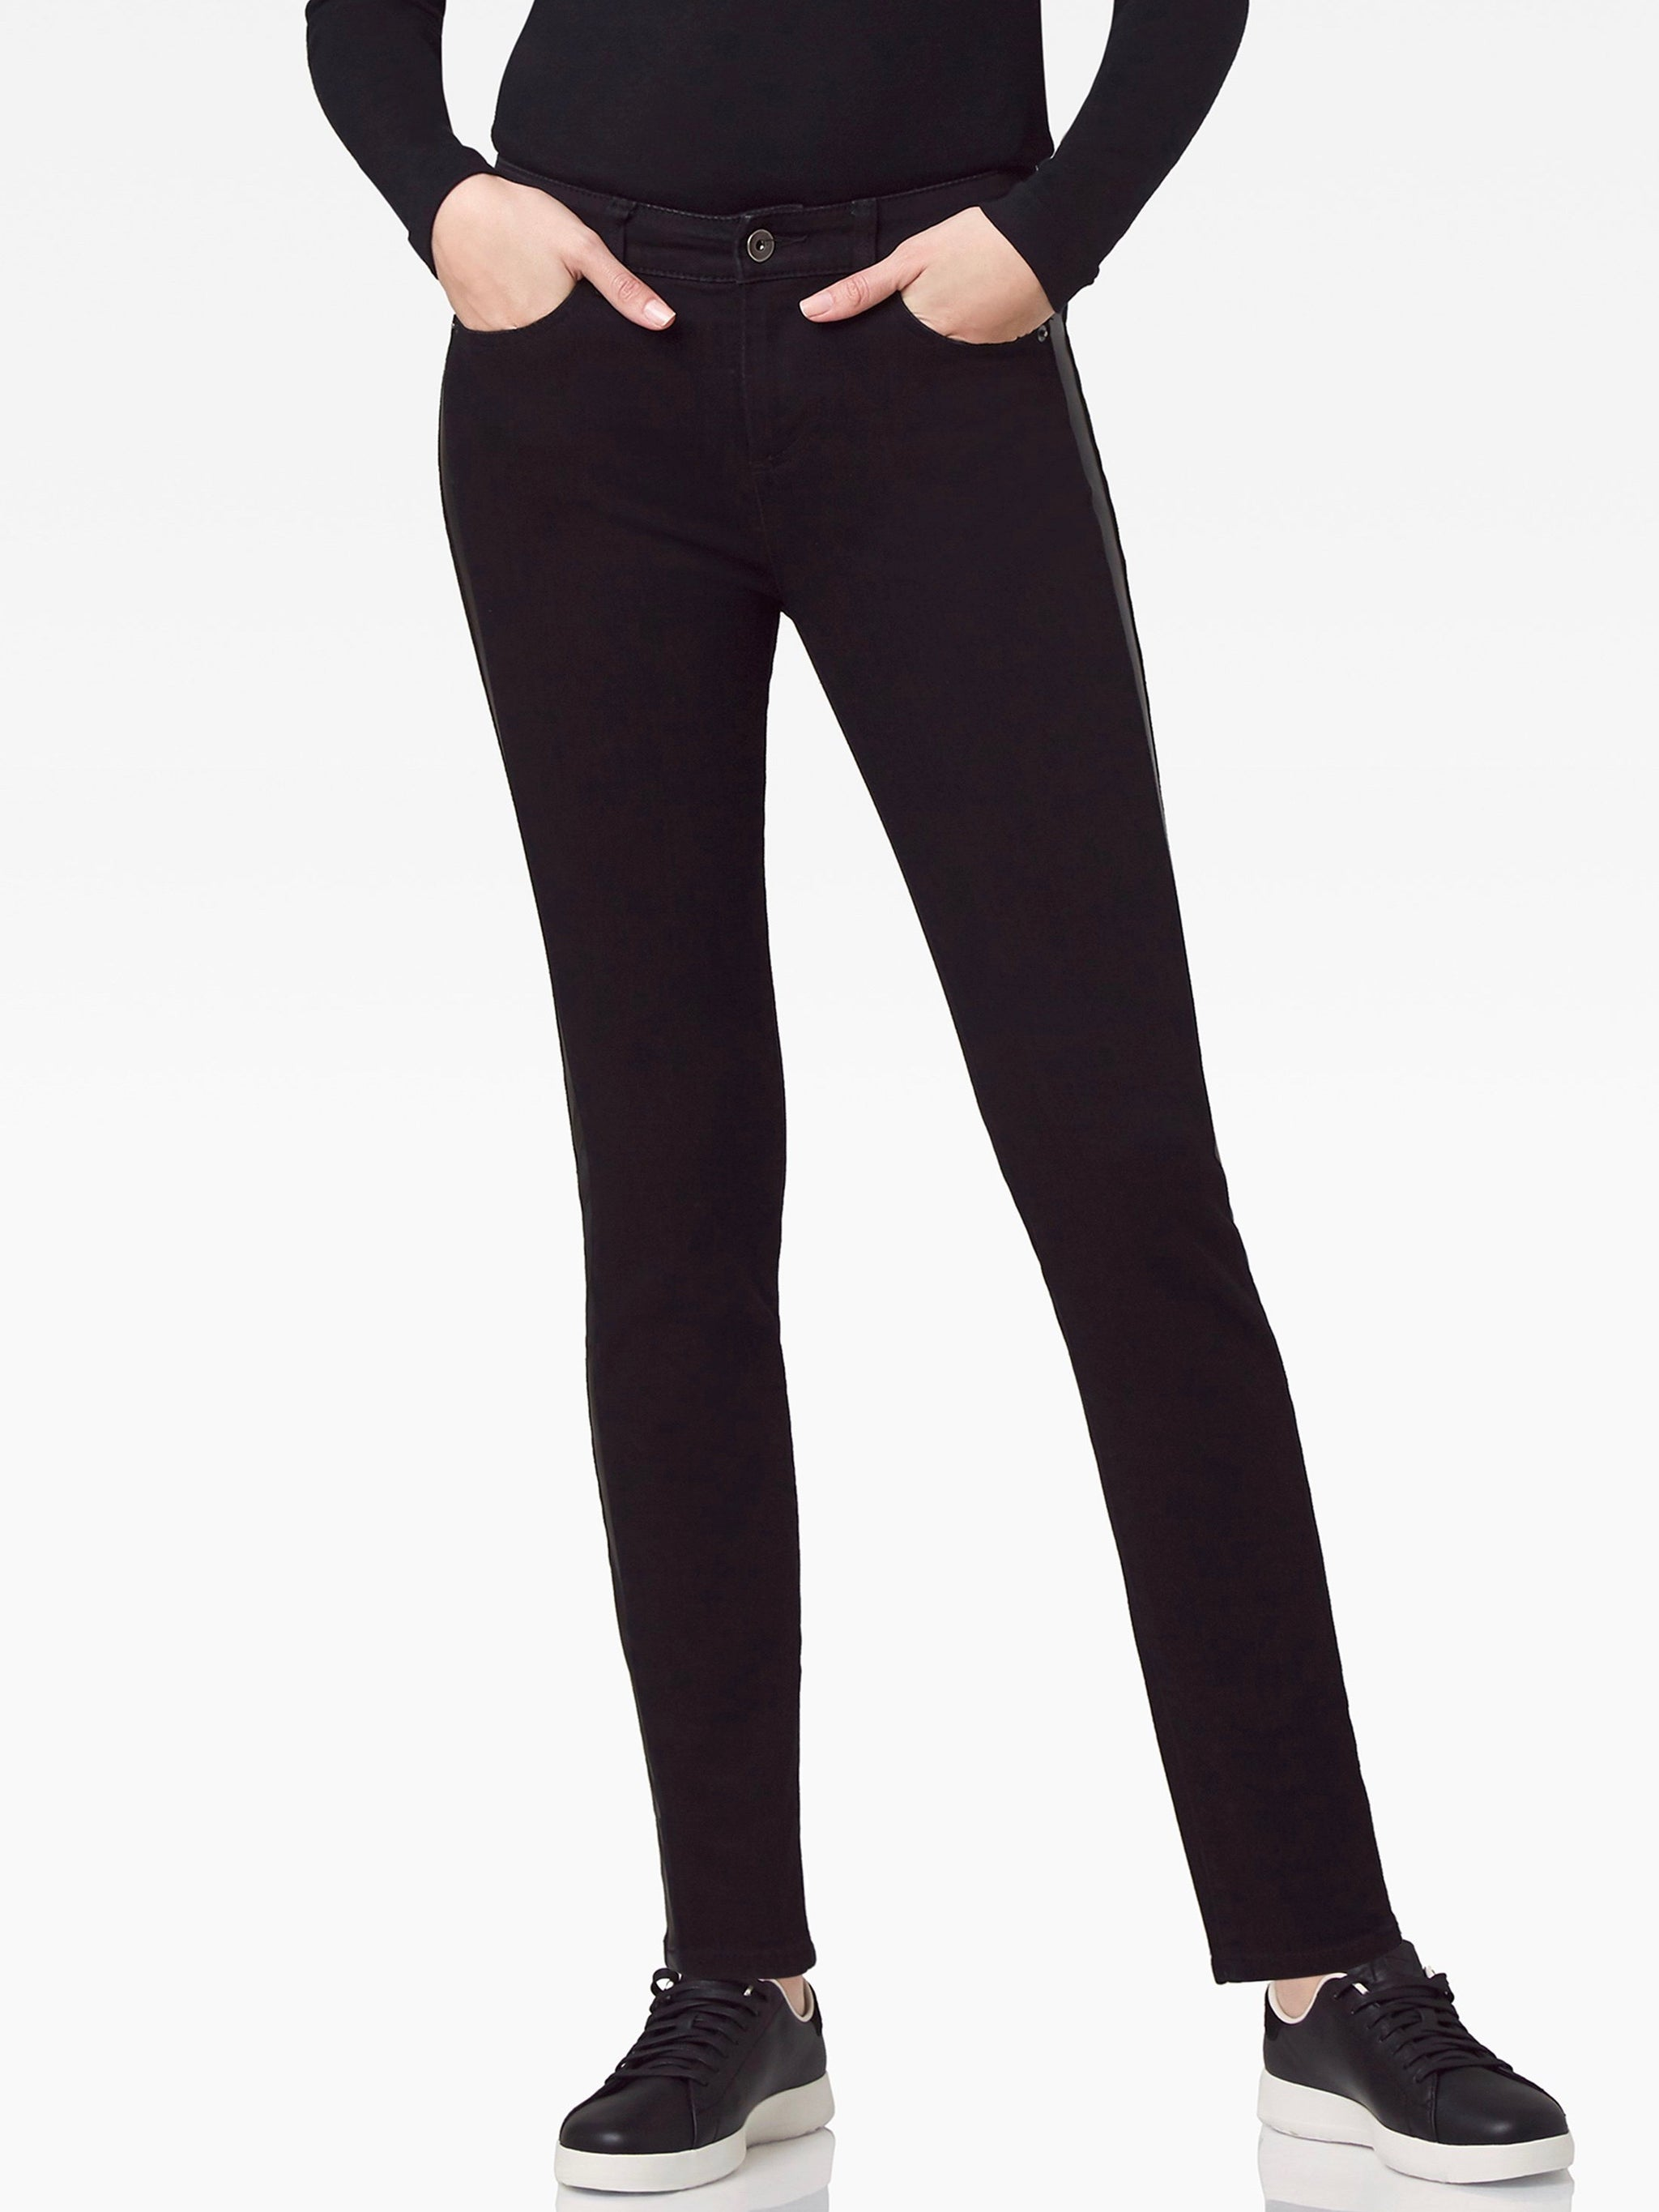 Beverly Skinny Jean with Leather Insert